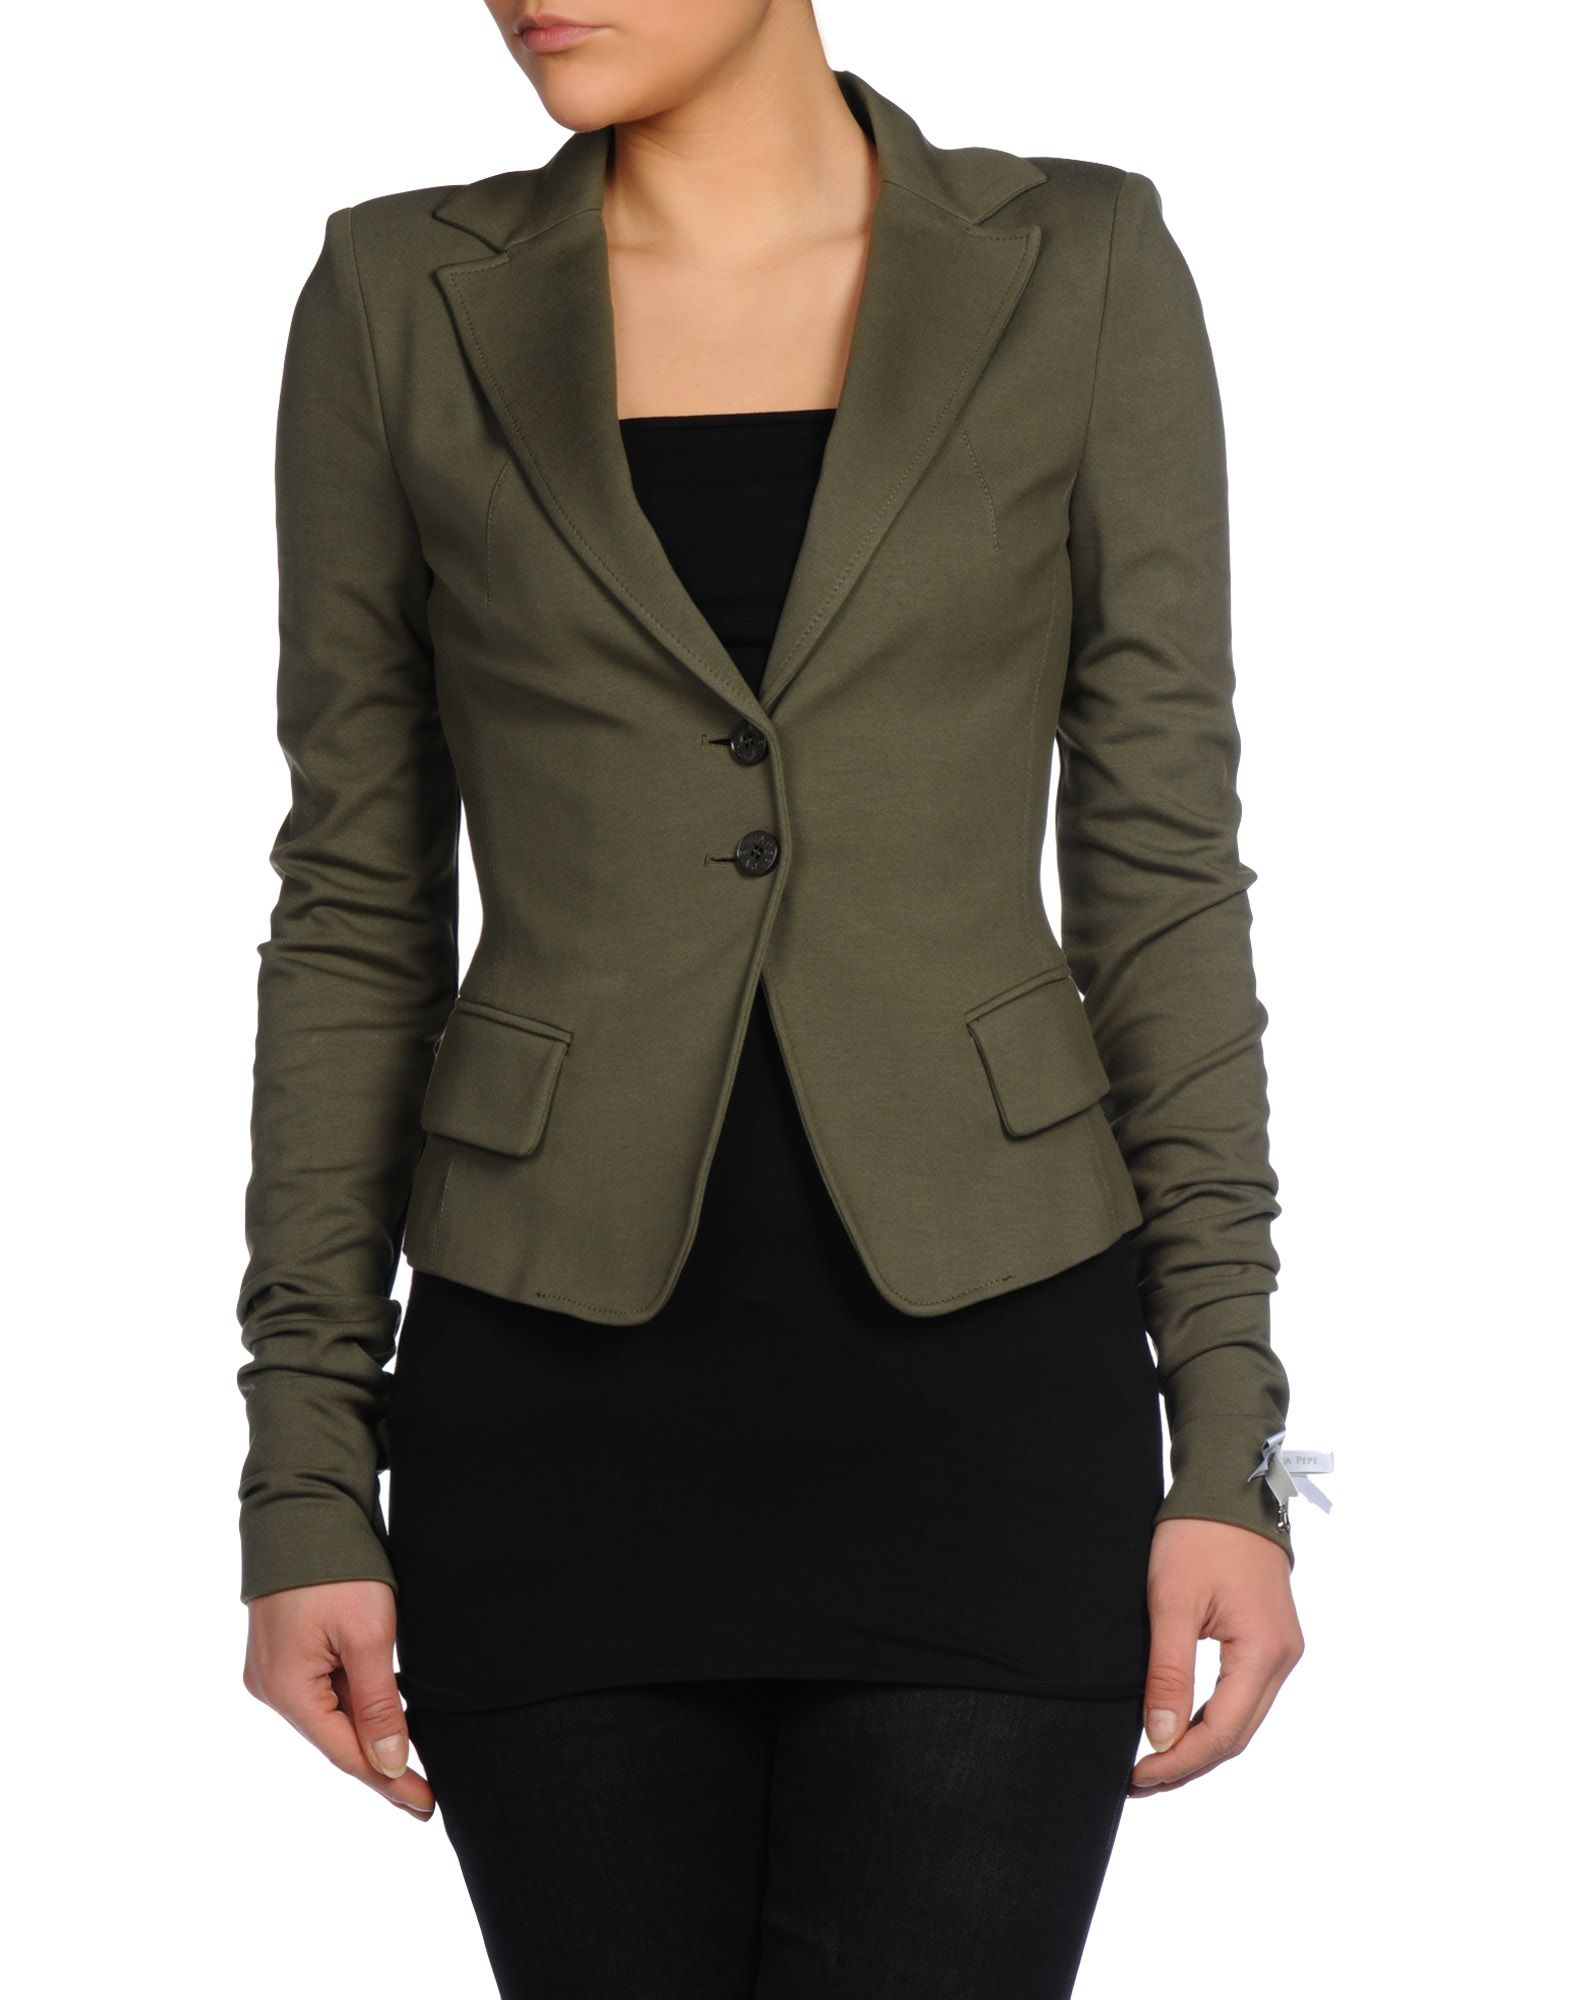 patrizia pepe blazer in green military green lyst. Black Bedroom Furniture Sets. Home Design Ideas